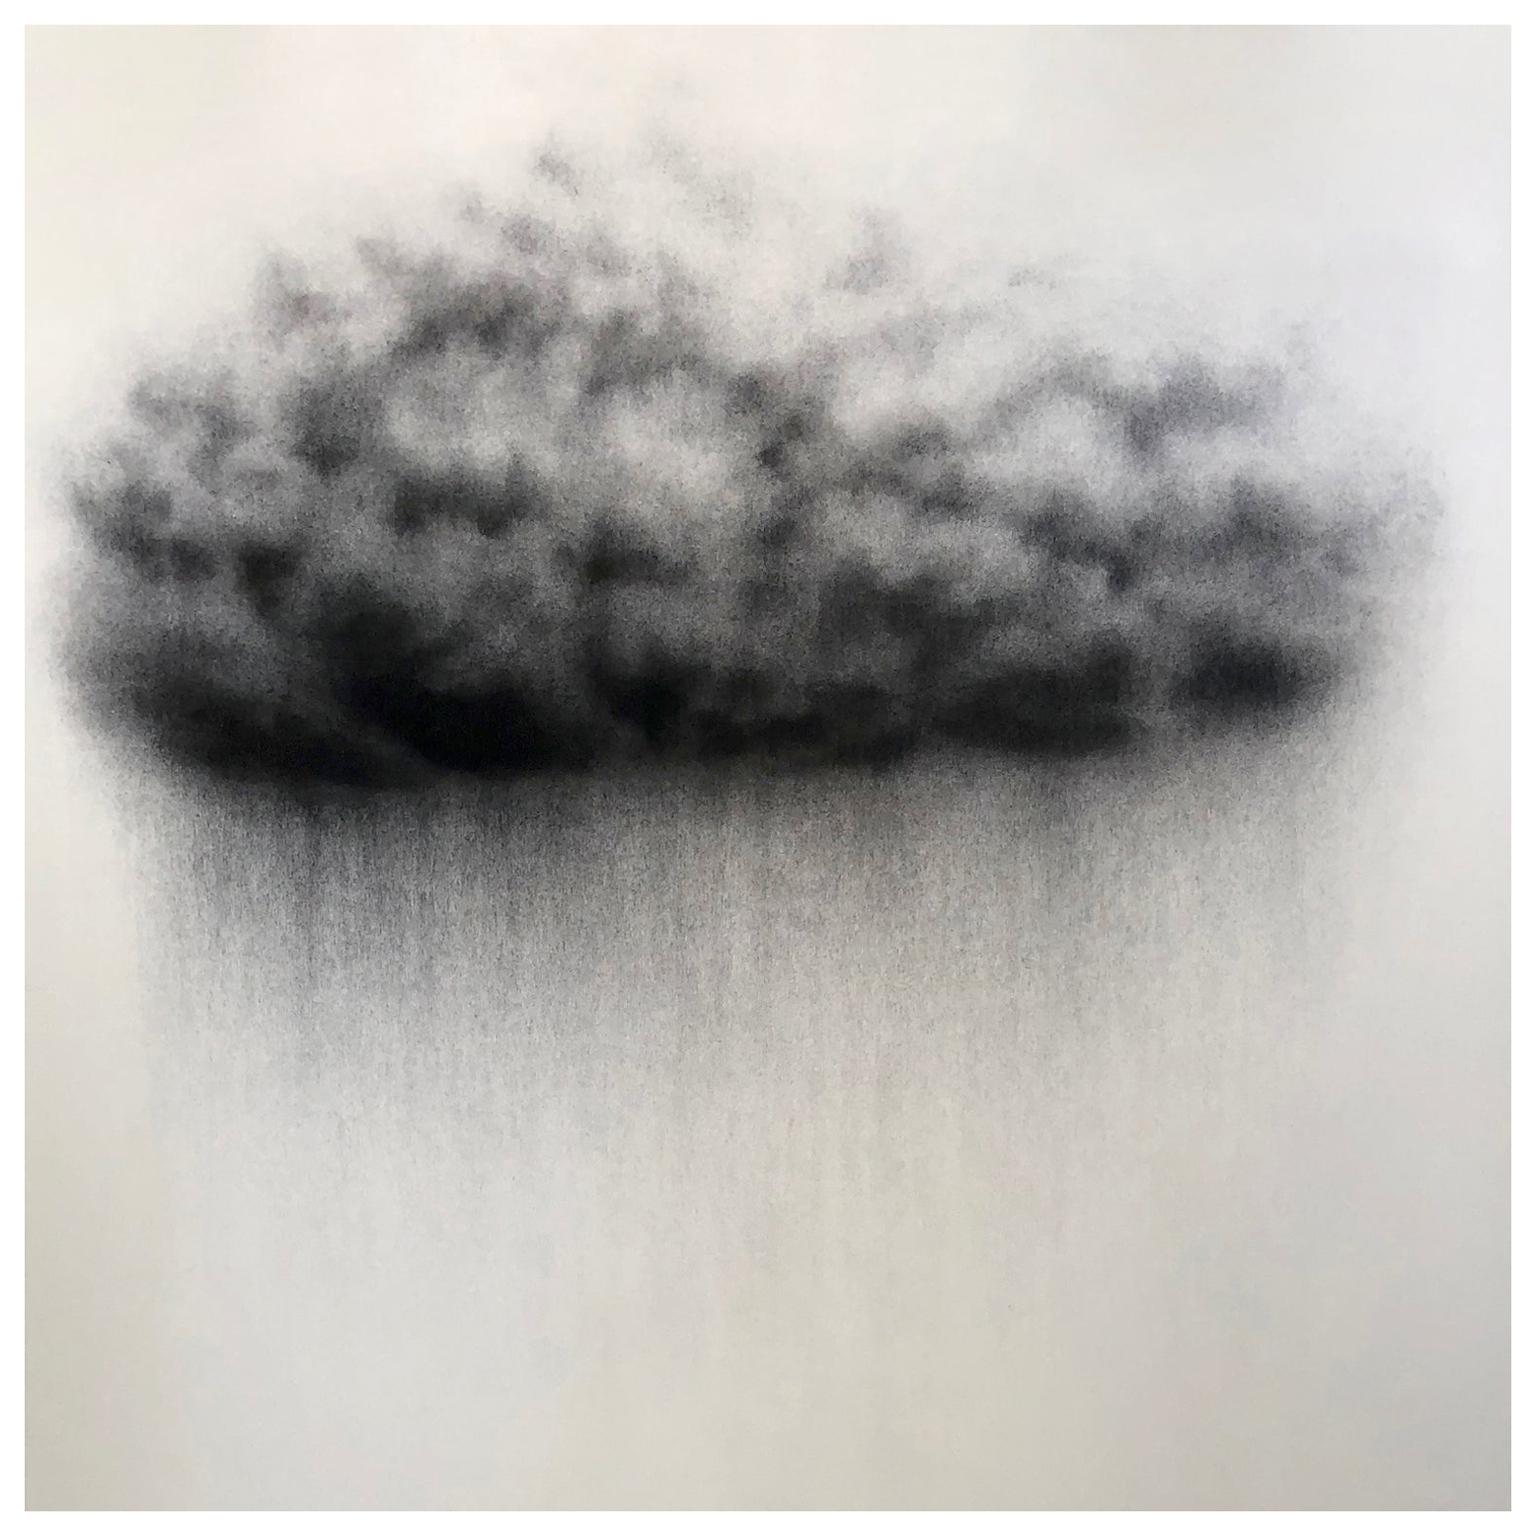 Nuage, Cloud, Charcoal on Paper, Contemporary Drawing, Clio Szeto